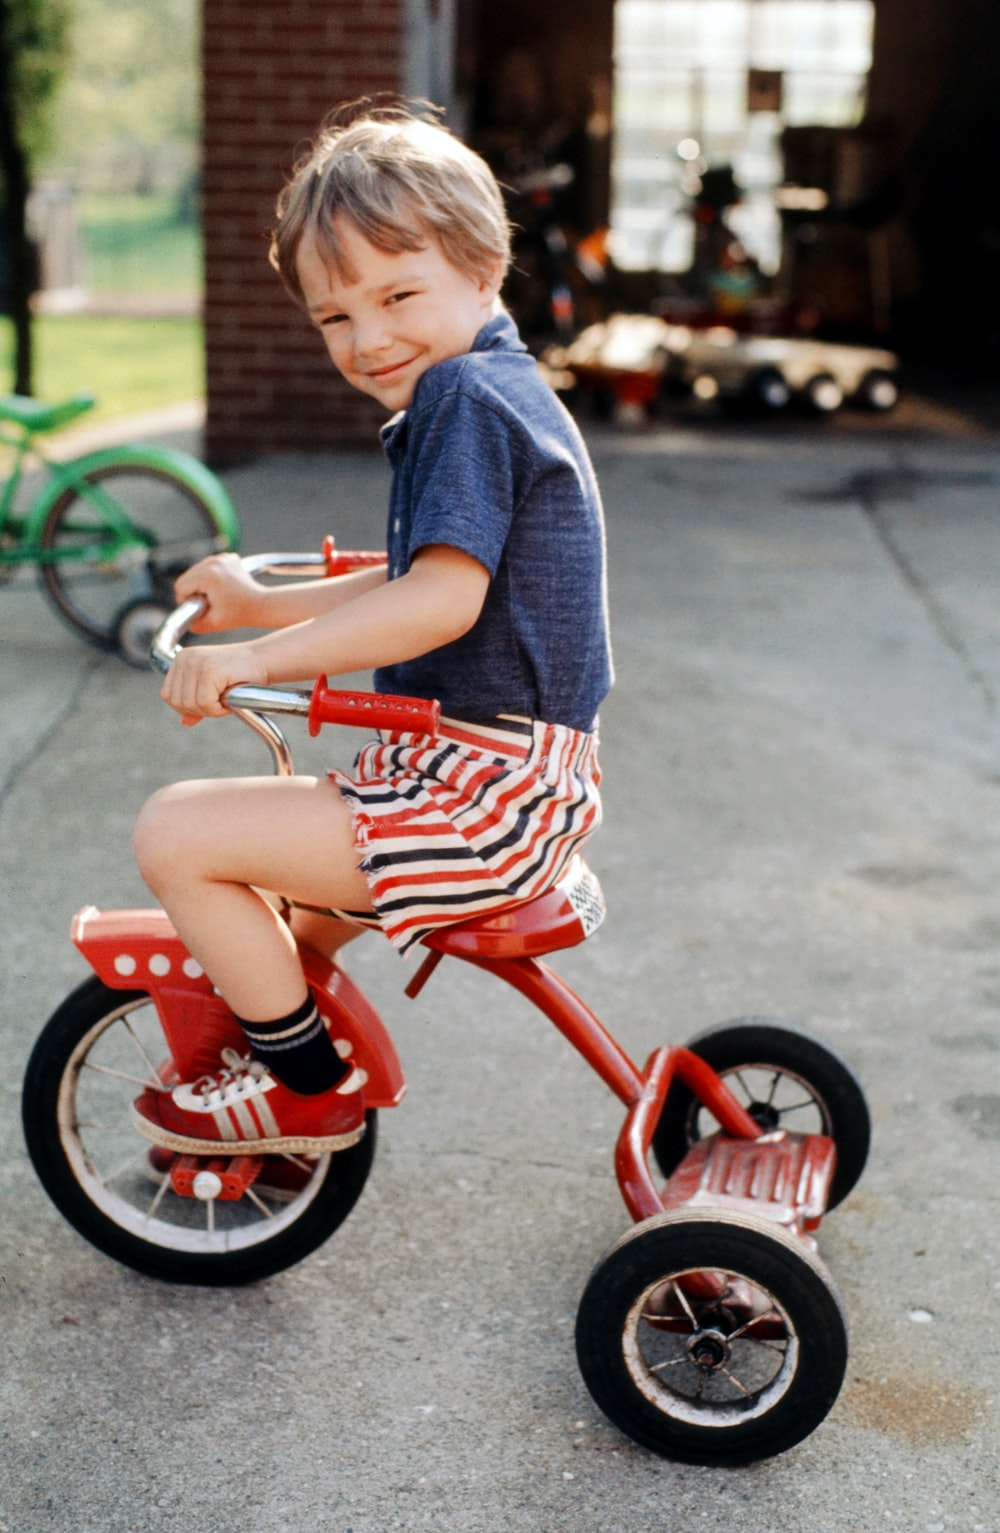 boy in blue and red crew neck t-shirt riding red trike